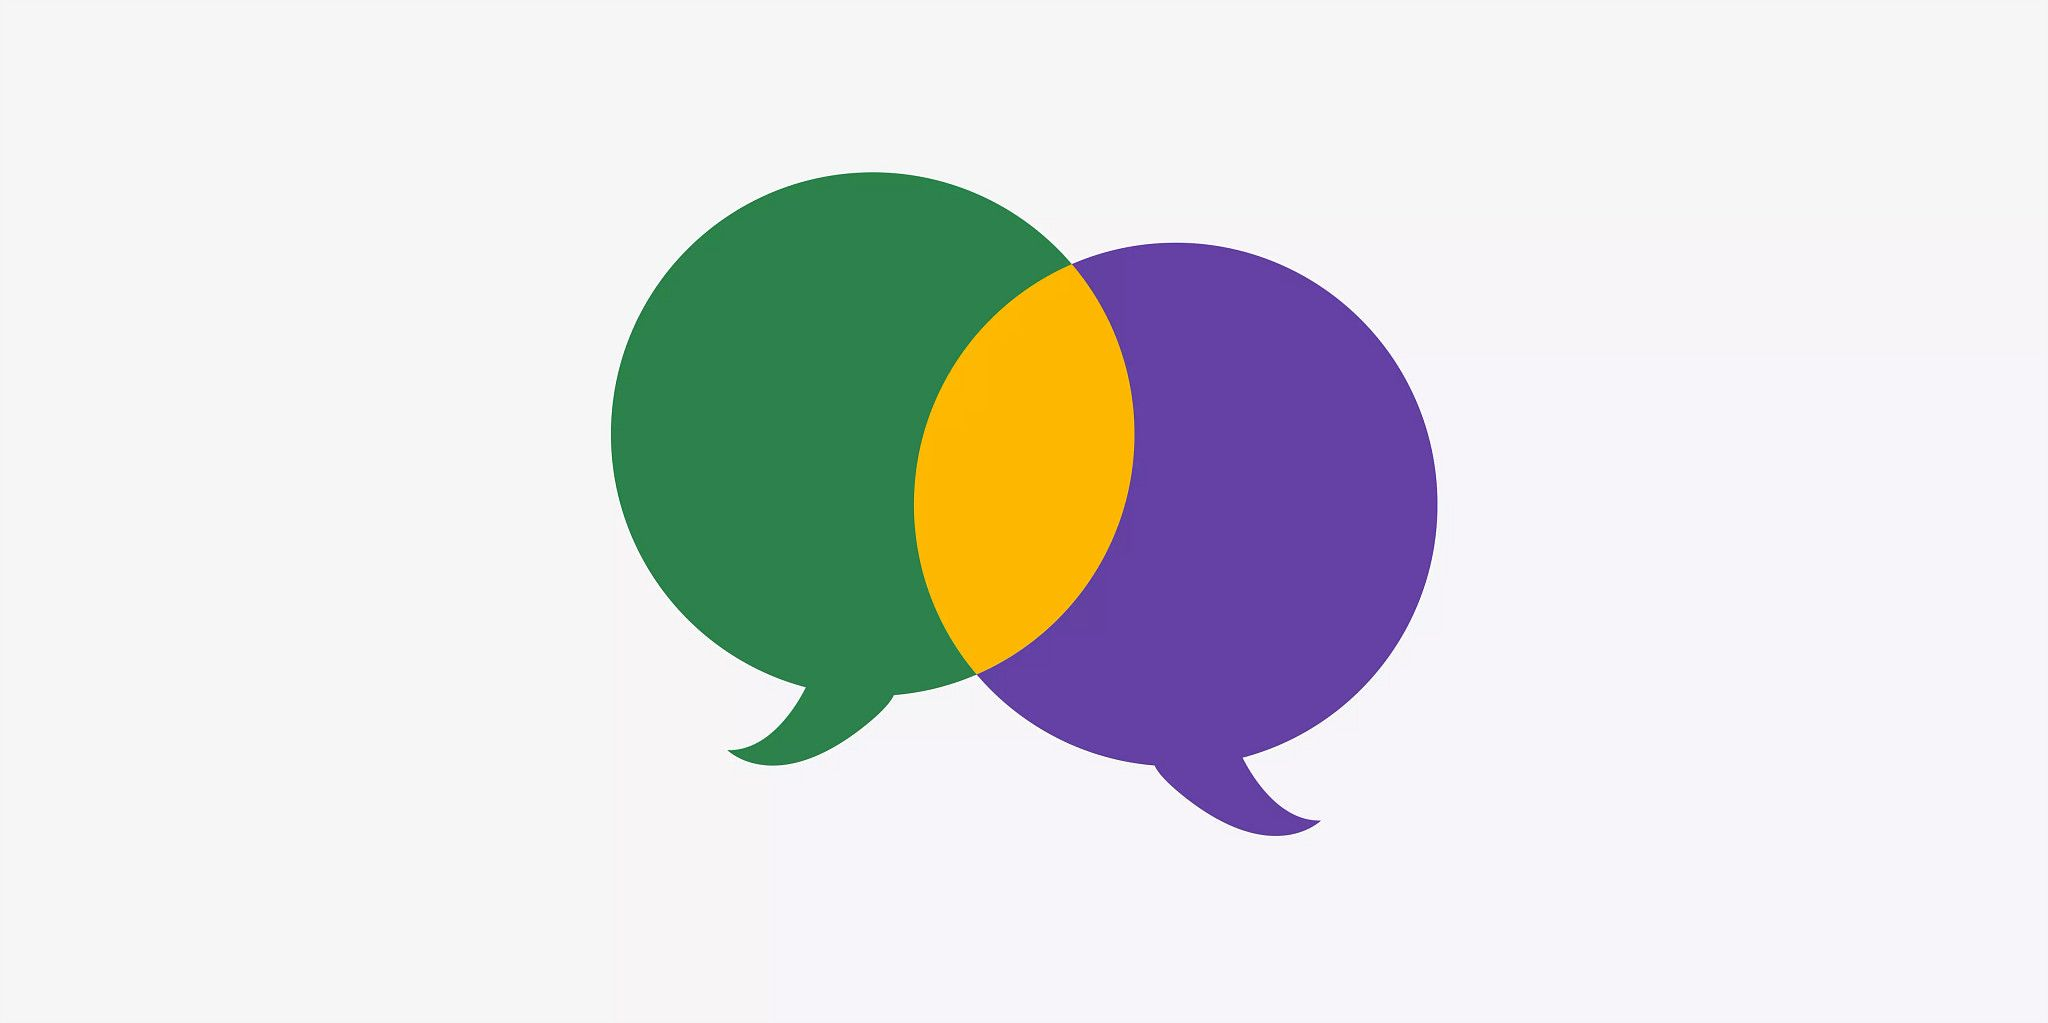 One green and one purple conversation bubble overlapping in the center of the graphic, depicted in yellow where they intersect.